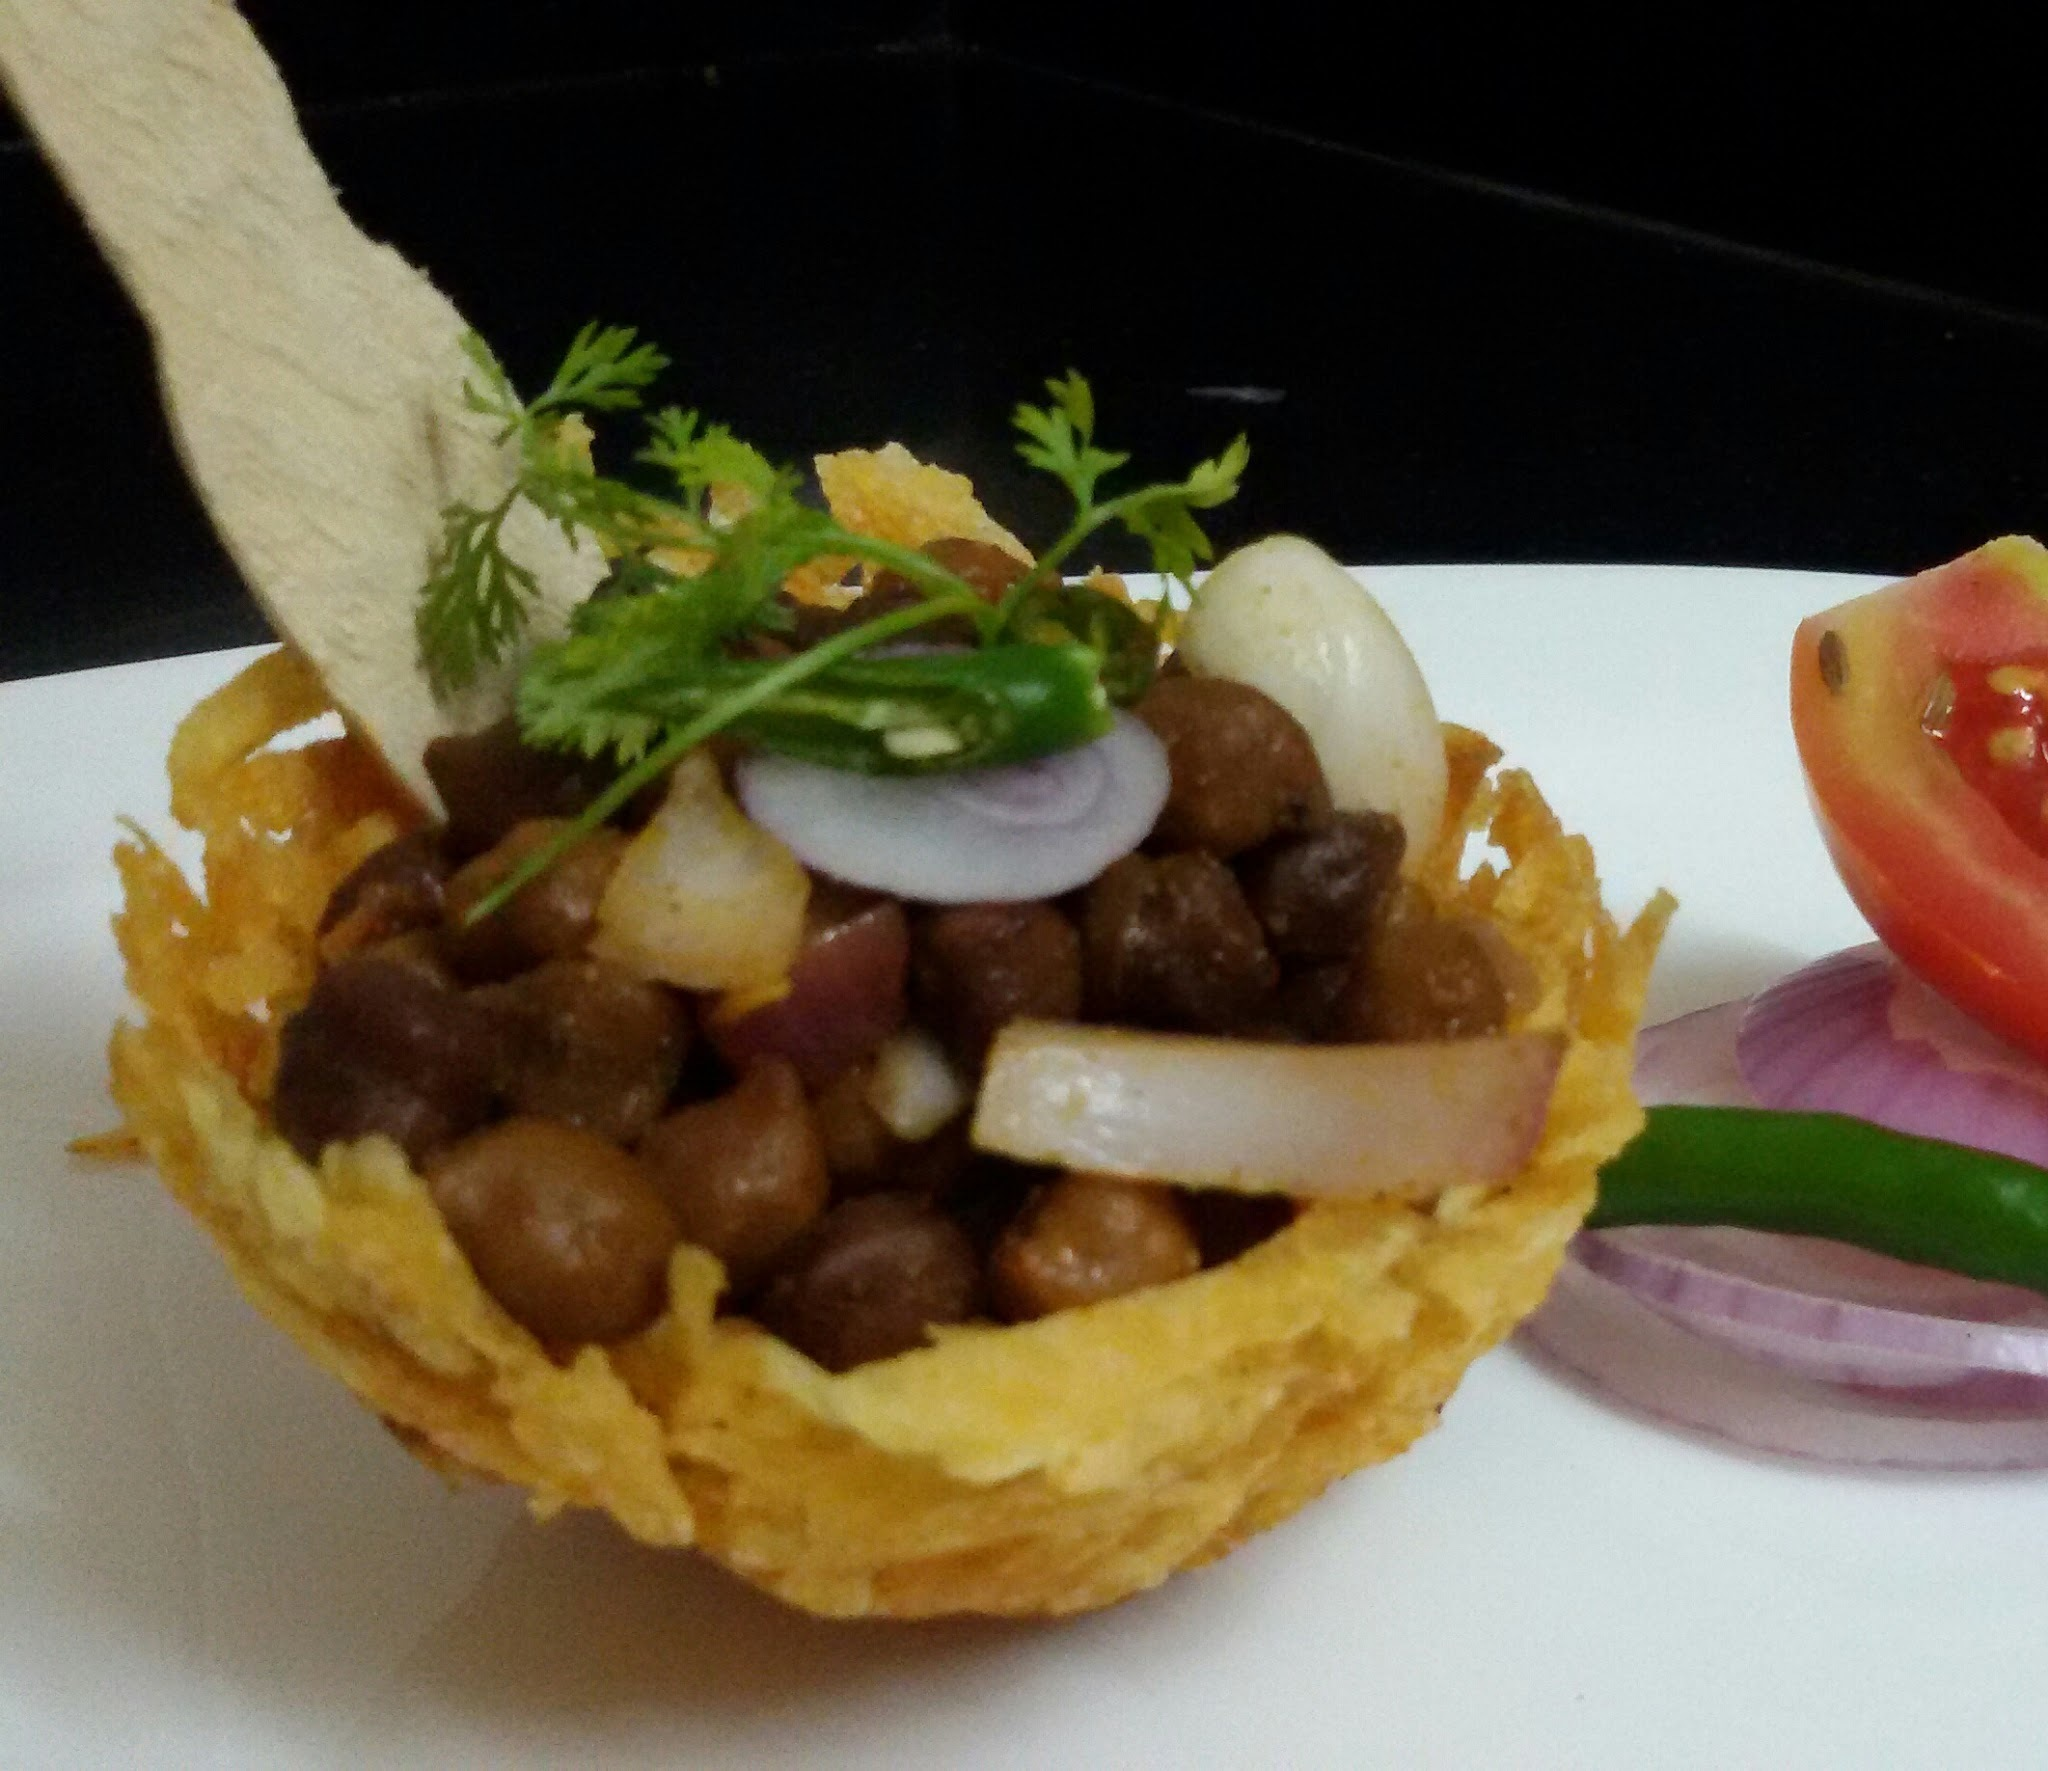 Dry Chickpeas  Chaat  in Edible  Crispy Potato  Basket ....Chana Chaat in Crispy  Aloo  Tokri